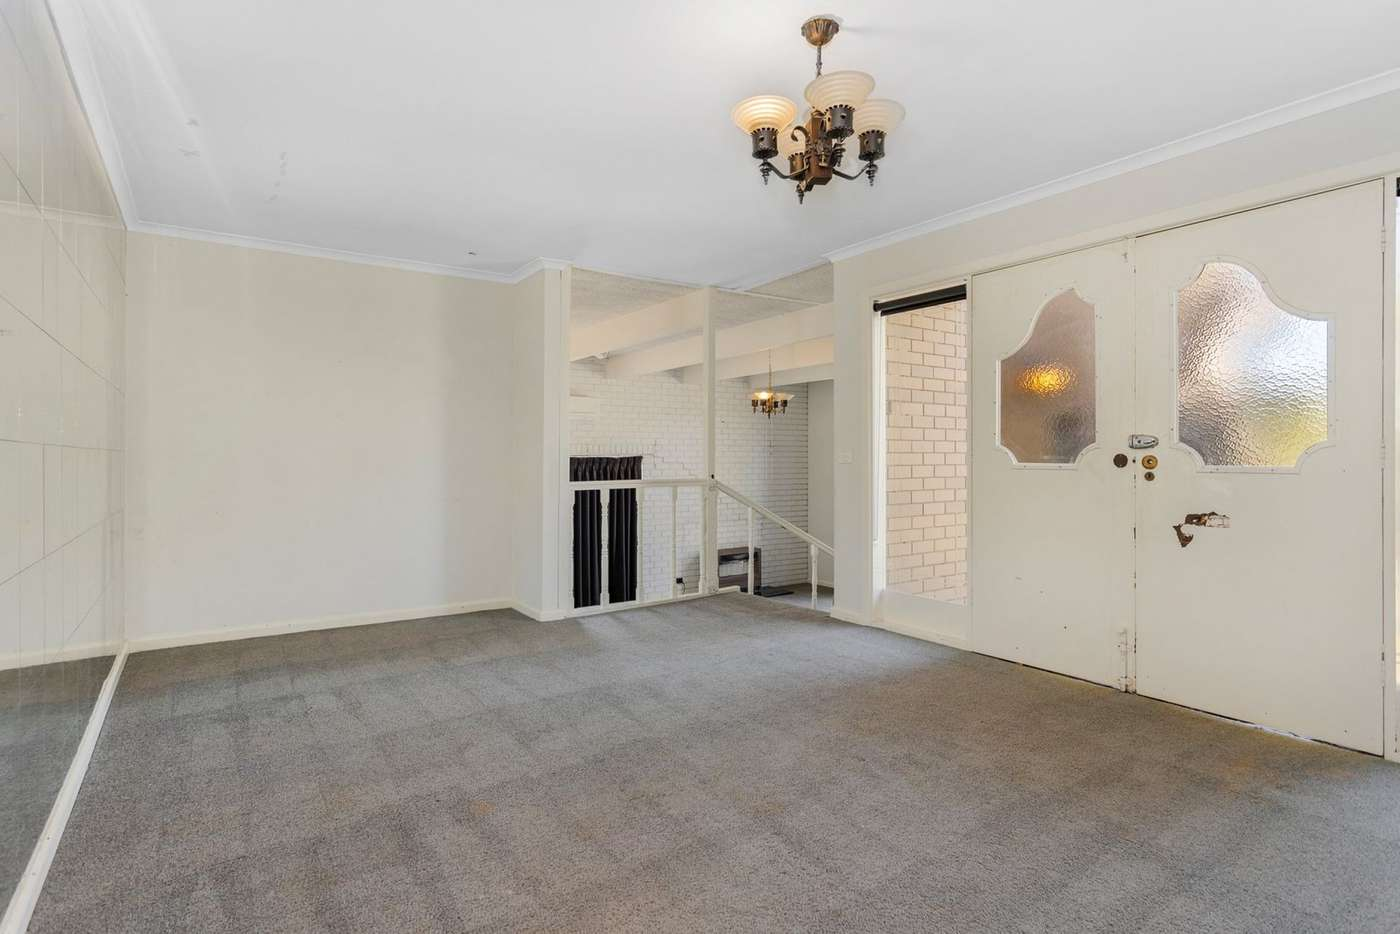 Fifth view of Homely house listing, 230-236 Marong Road, Maiden Gully VIC 3551